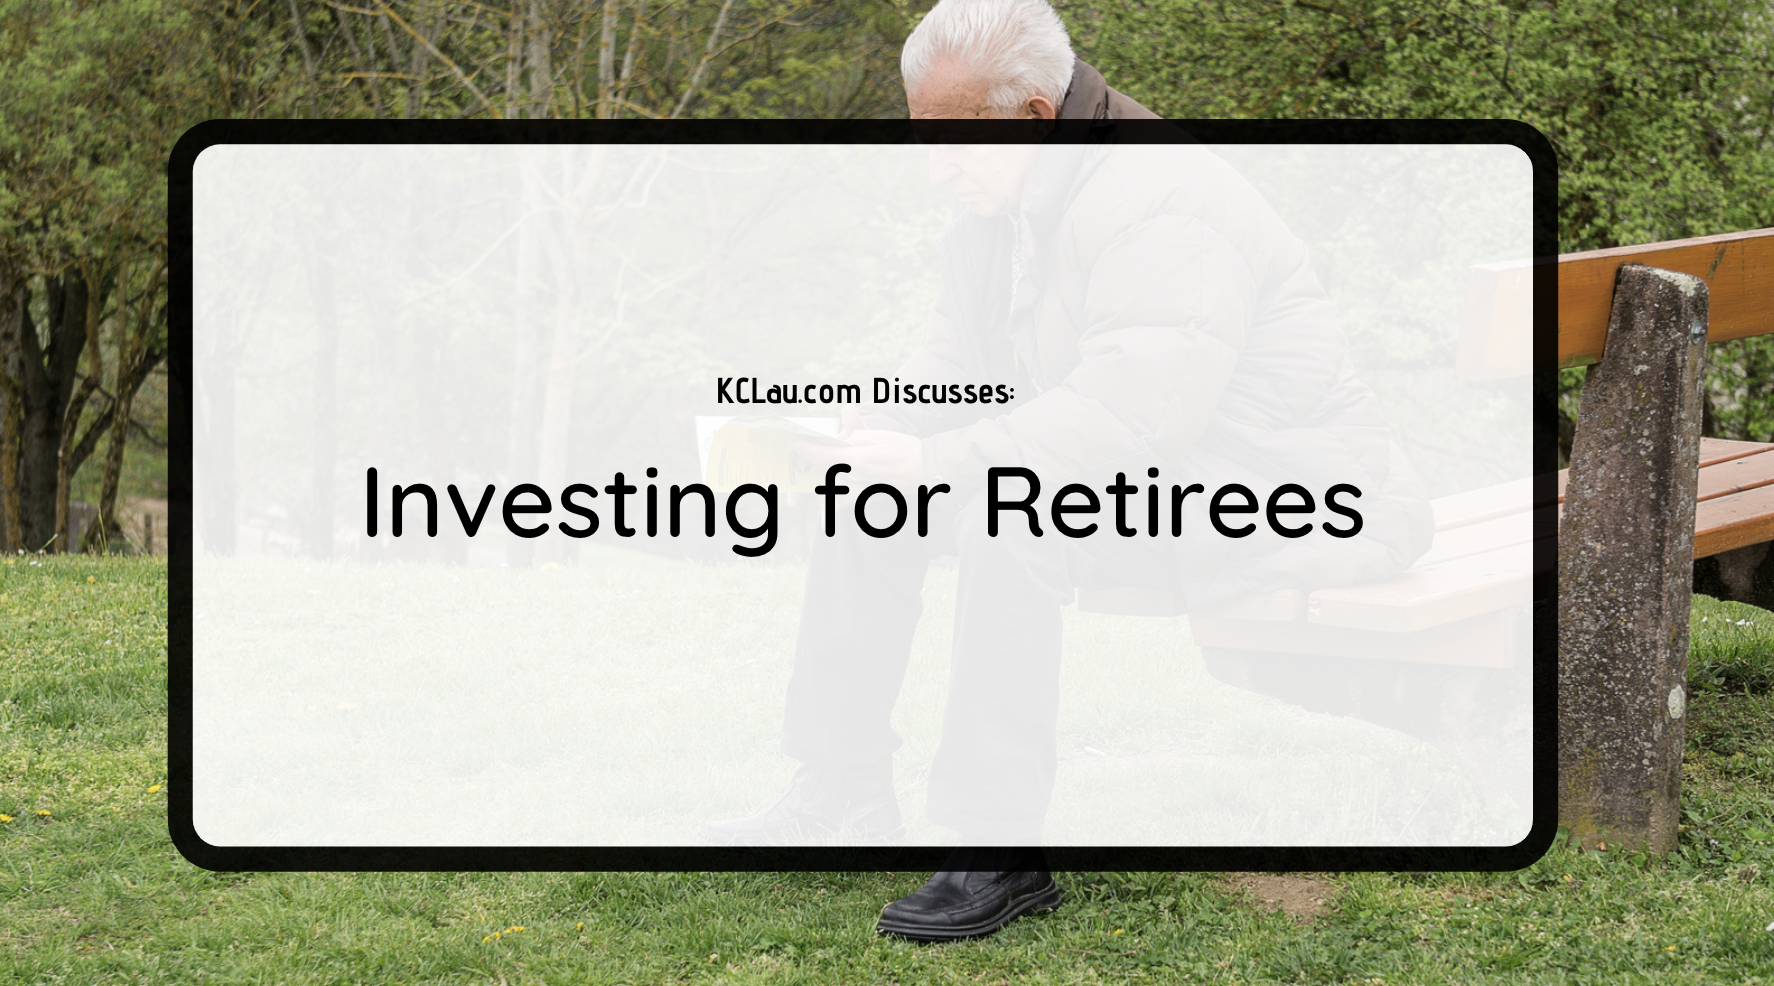 Investing for Retirees